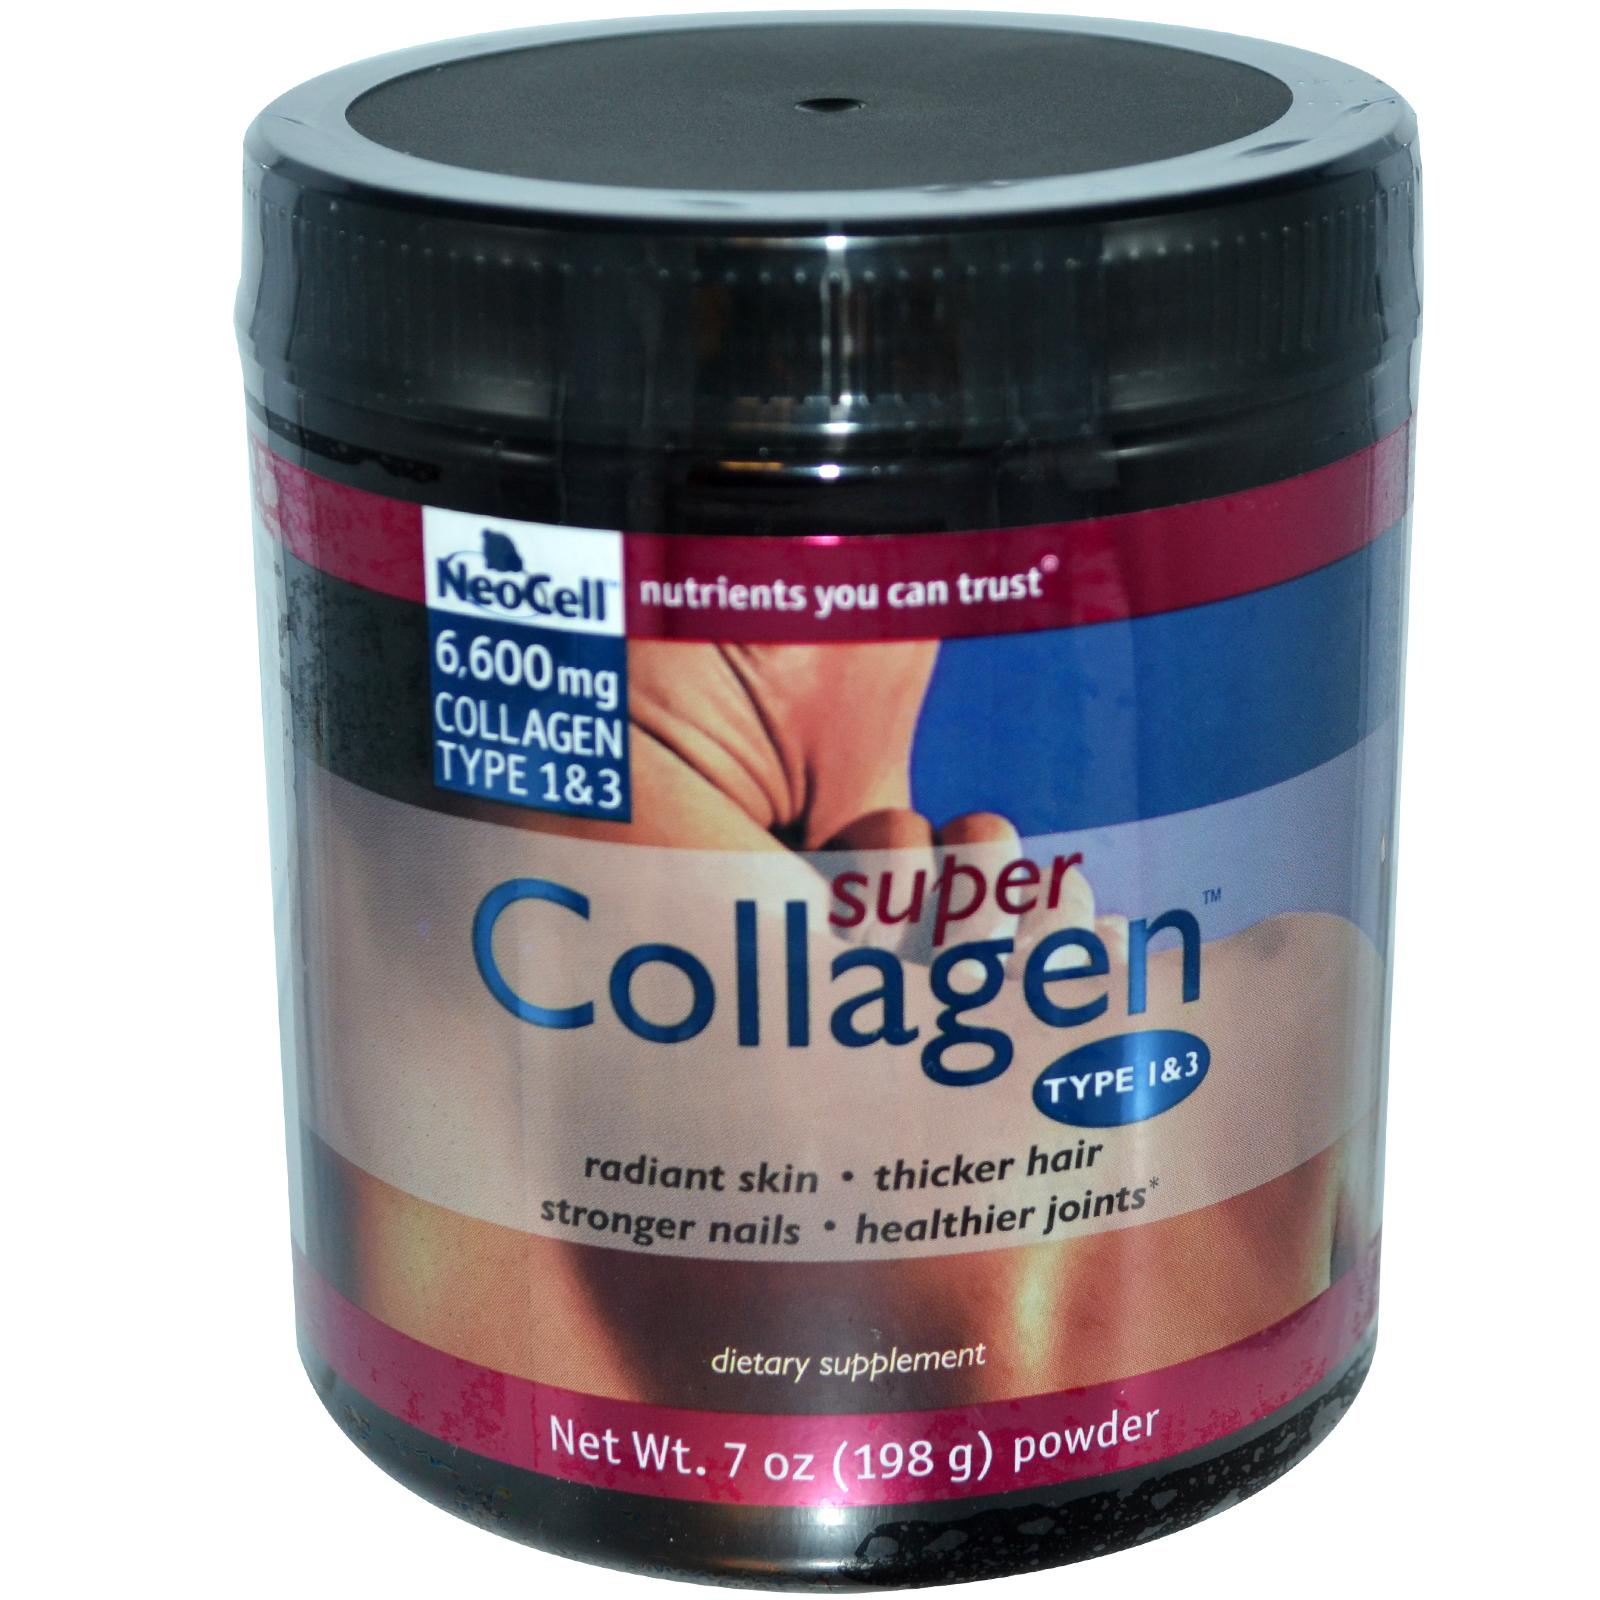 Neocell hydrolyzed collagen